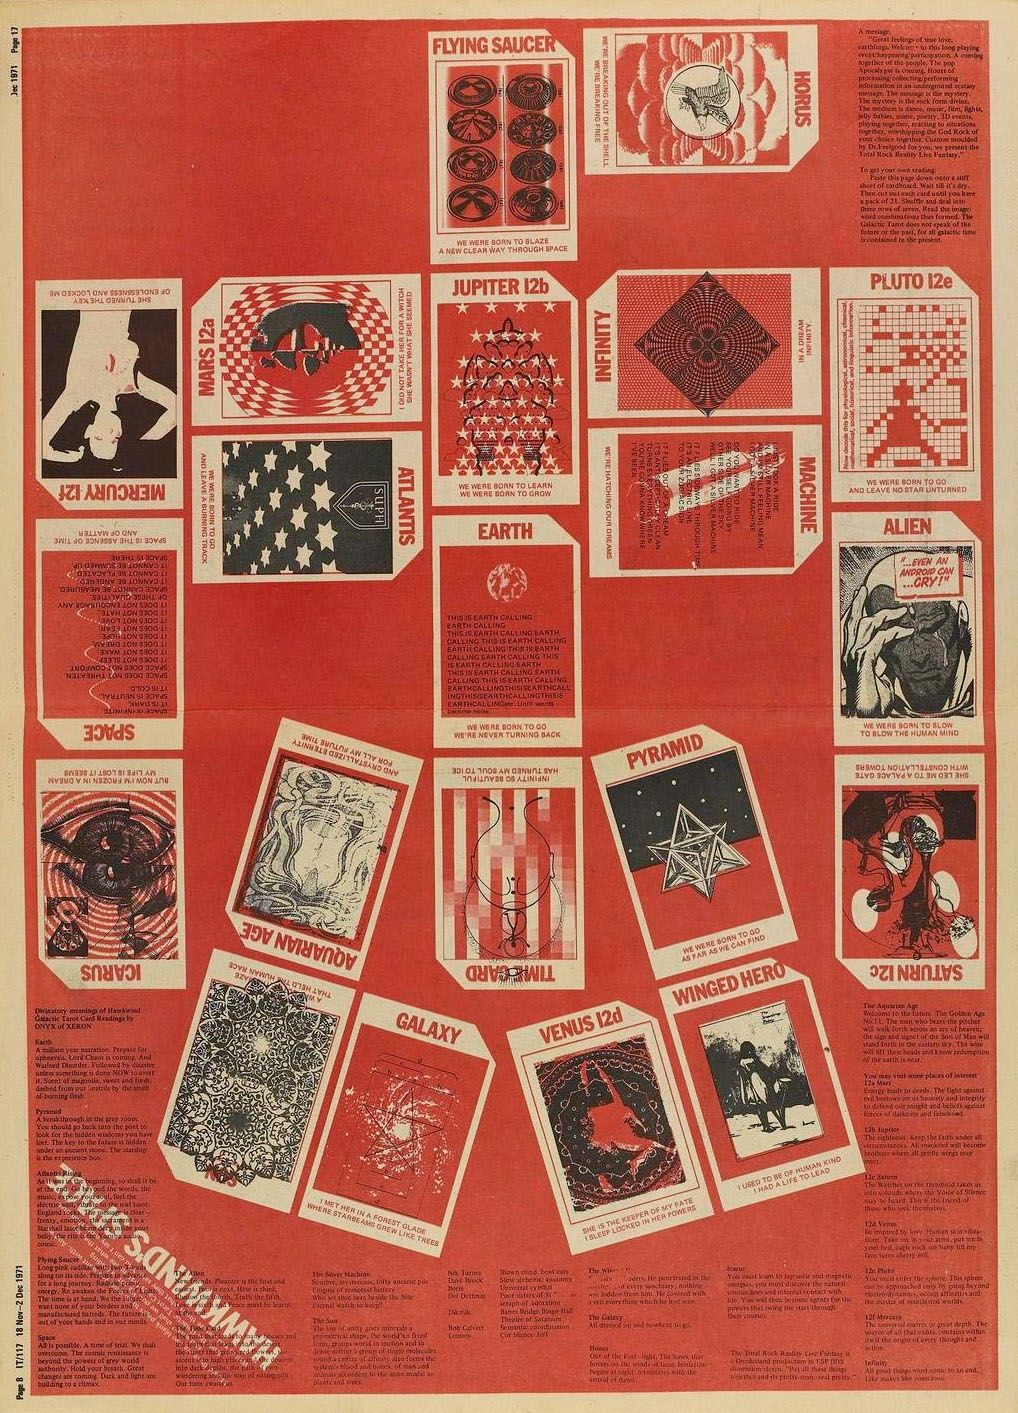 Hawkwind's Space tarot, taken from International Times, 1971 Possibly designed by Barney Bubbles